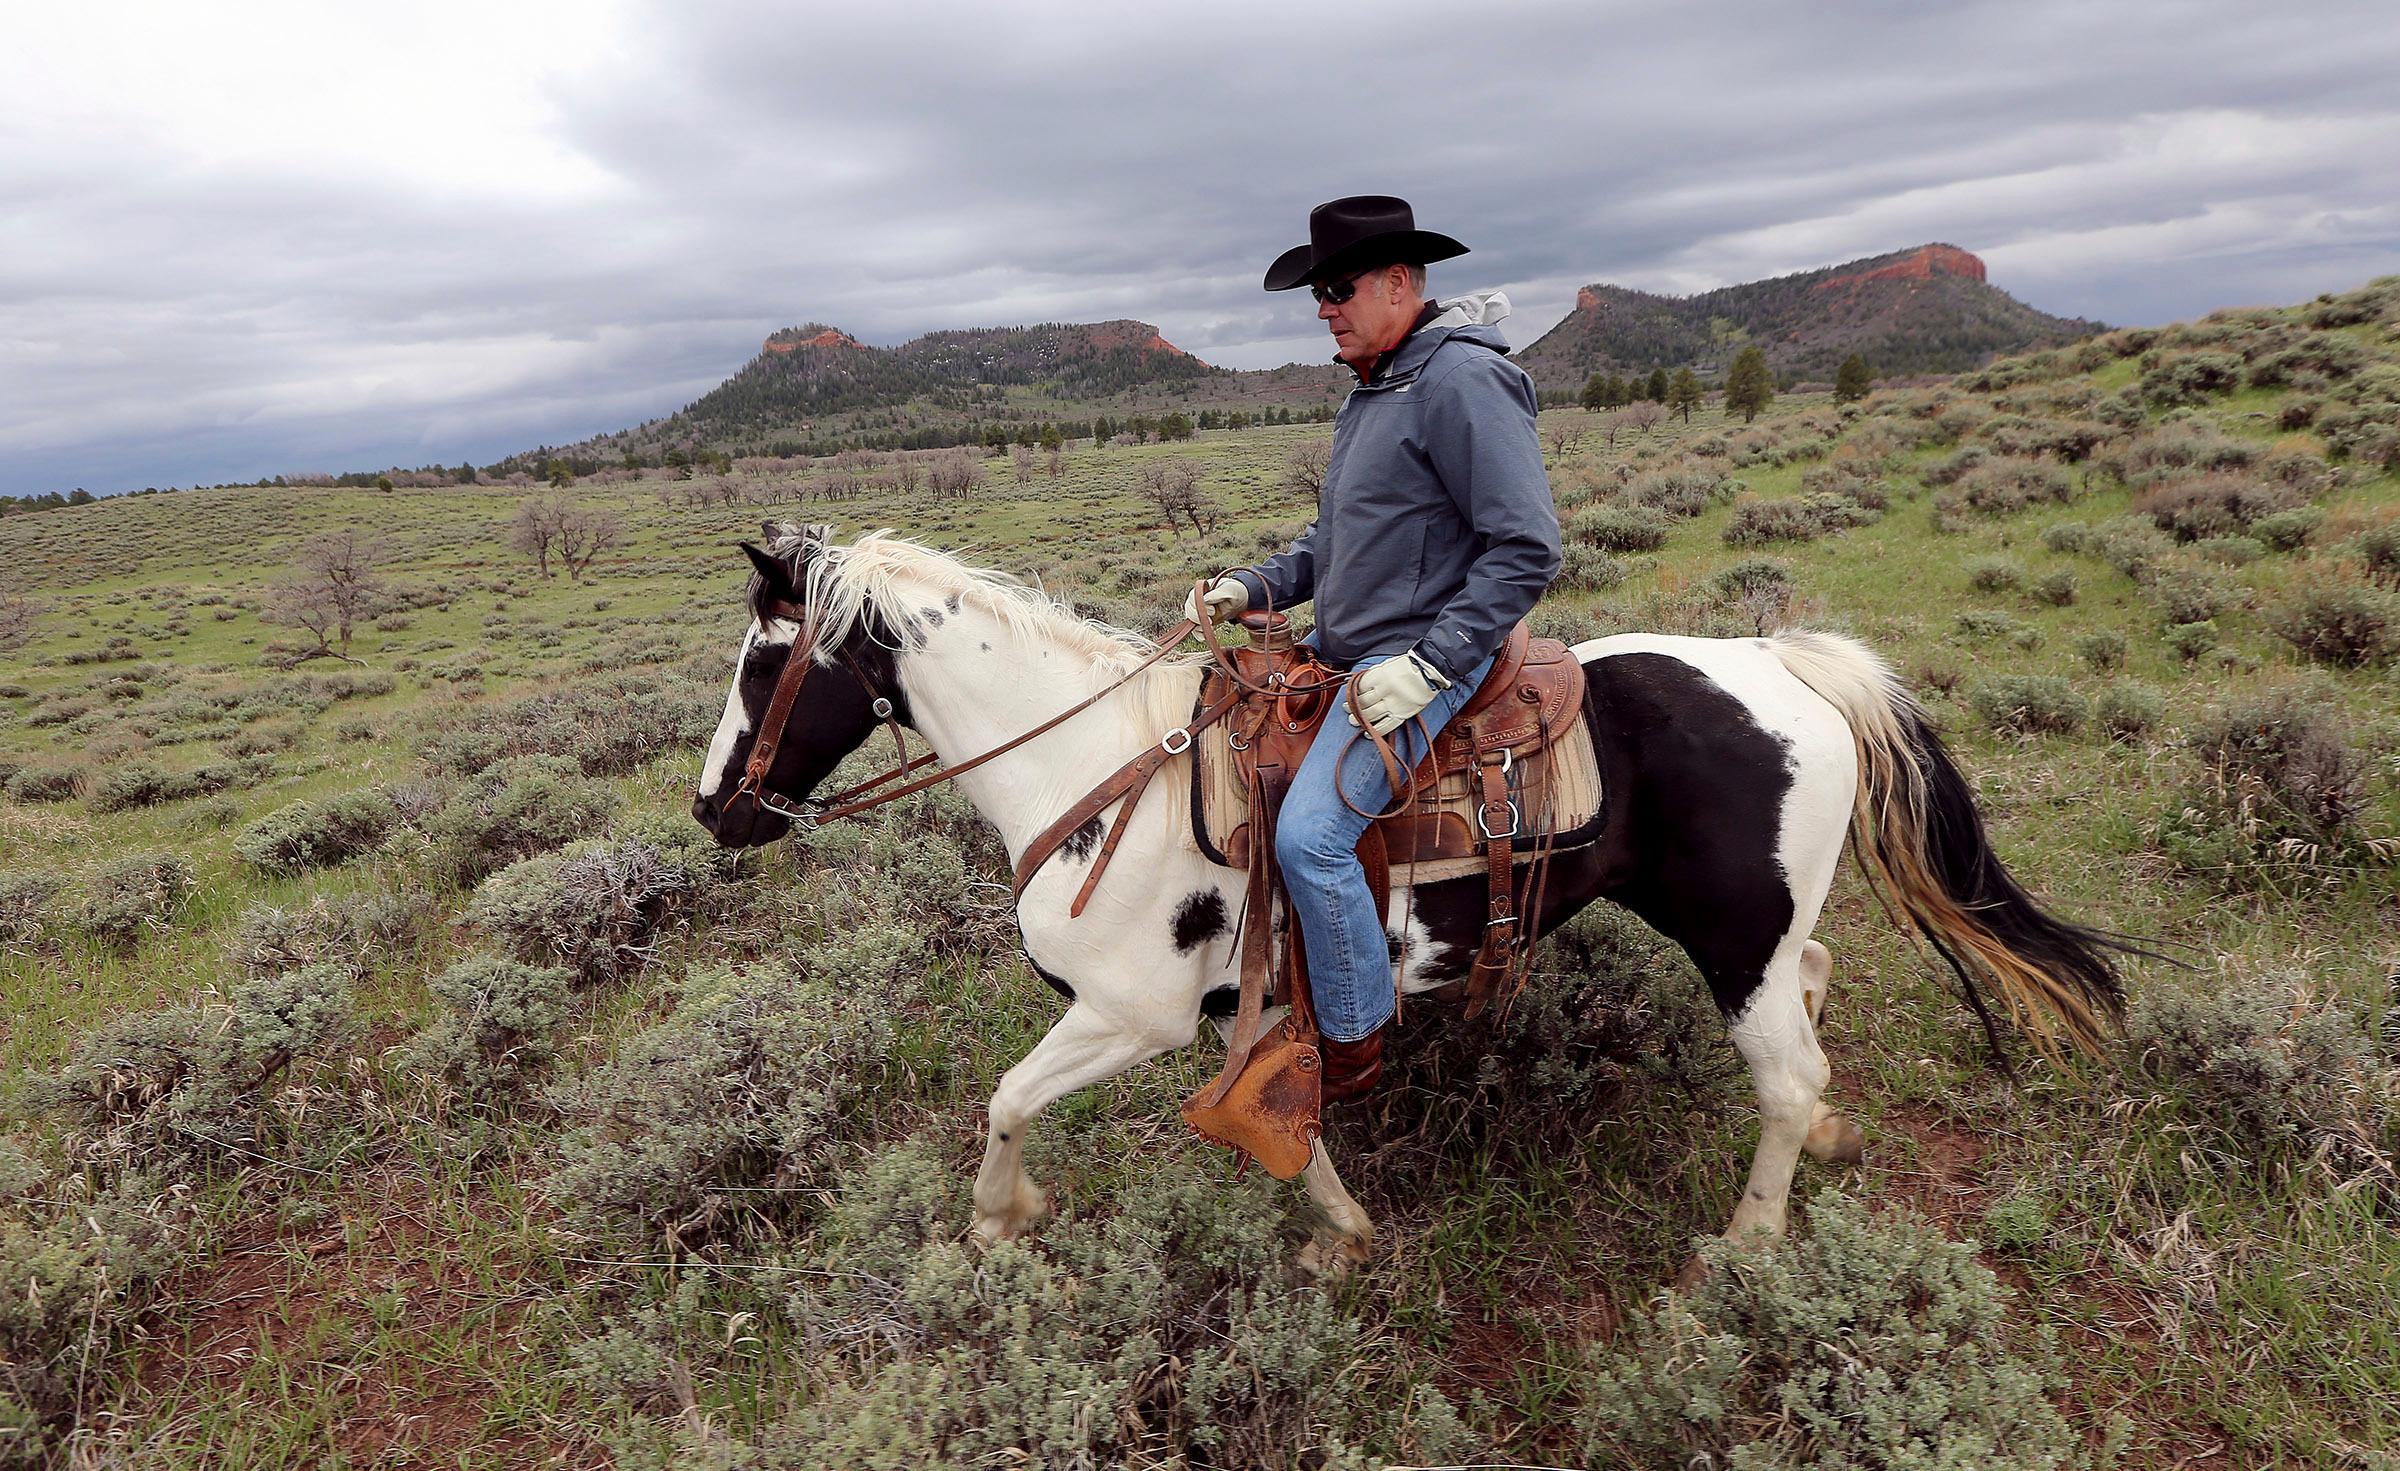 FILE - In this May 9, 2017, file photo, Interior Secretary Ryan Zinke rides a horse in the new Bears Ears National Monument near Blanding, Utah. Much of Bears Ears is on land administered by the Bureau of Land Management, which is part of Zinke's department. Western lawmakers are arguing that BLM headquarters should be moved from Washington, D.C., to the West because of its influence there. (Scott G Winterton/The Deseret News via AP, File)